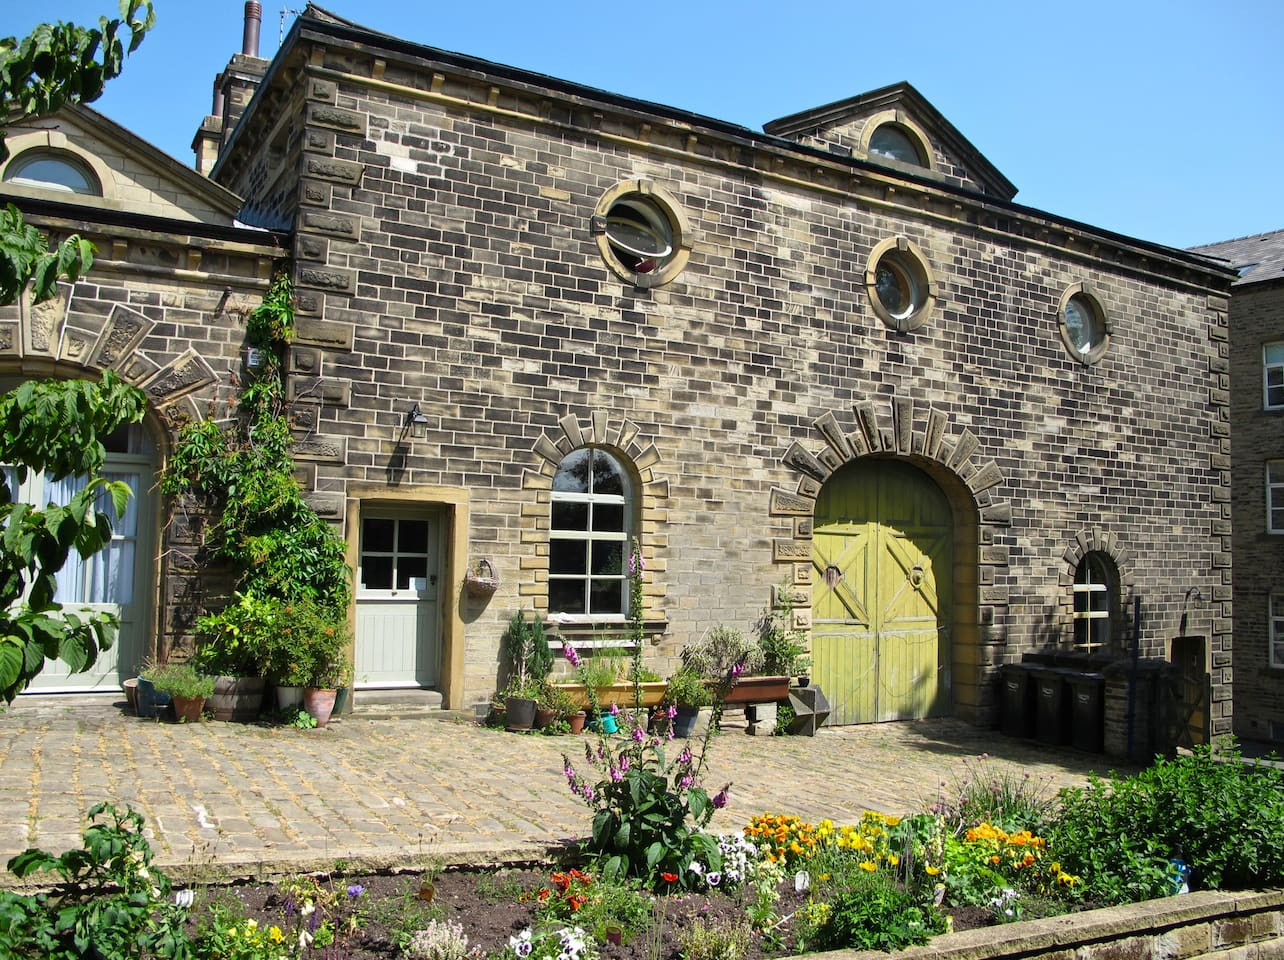 Oats Royd Barn - The home of great design.